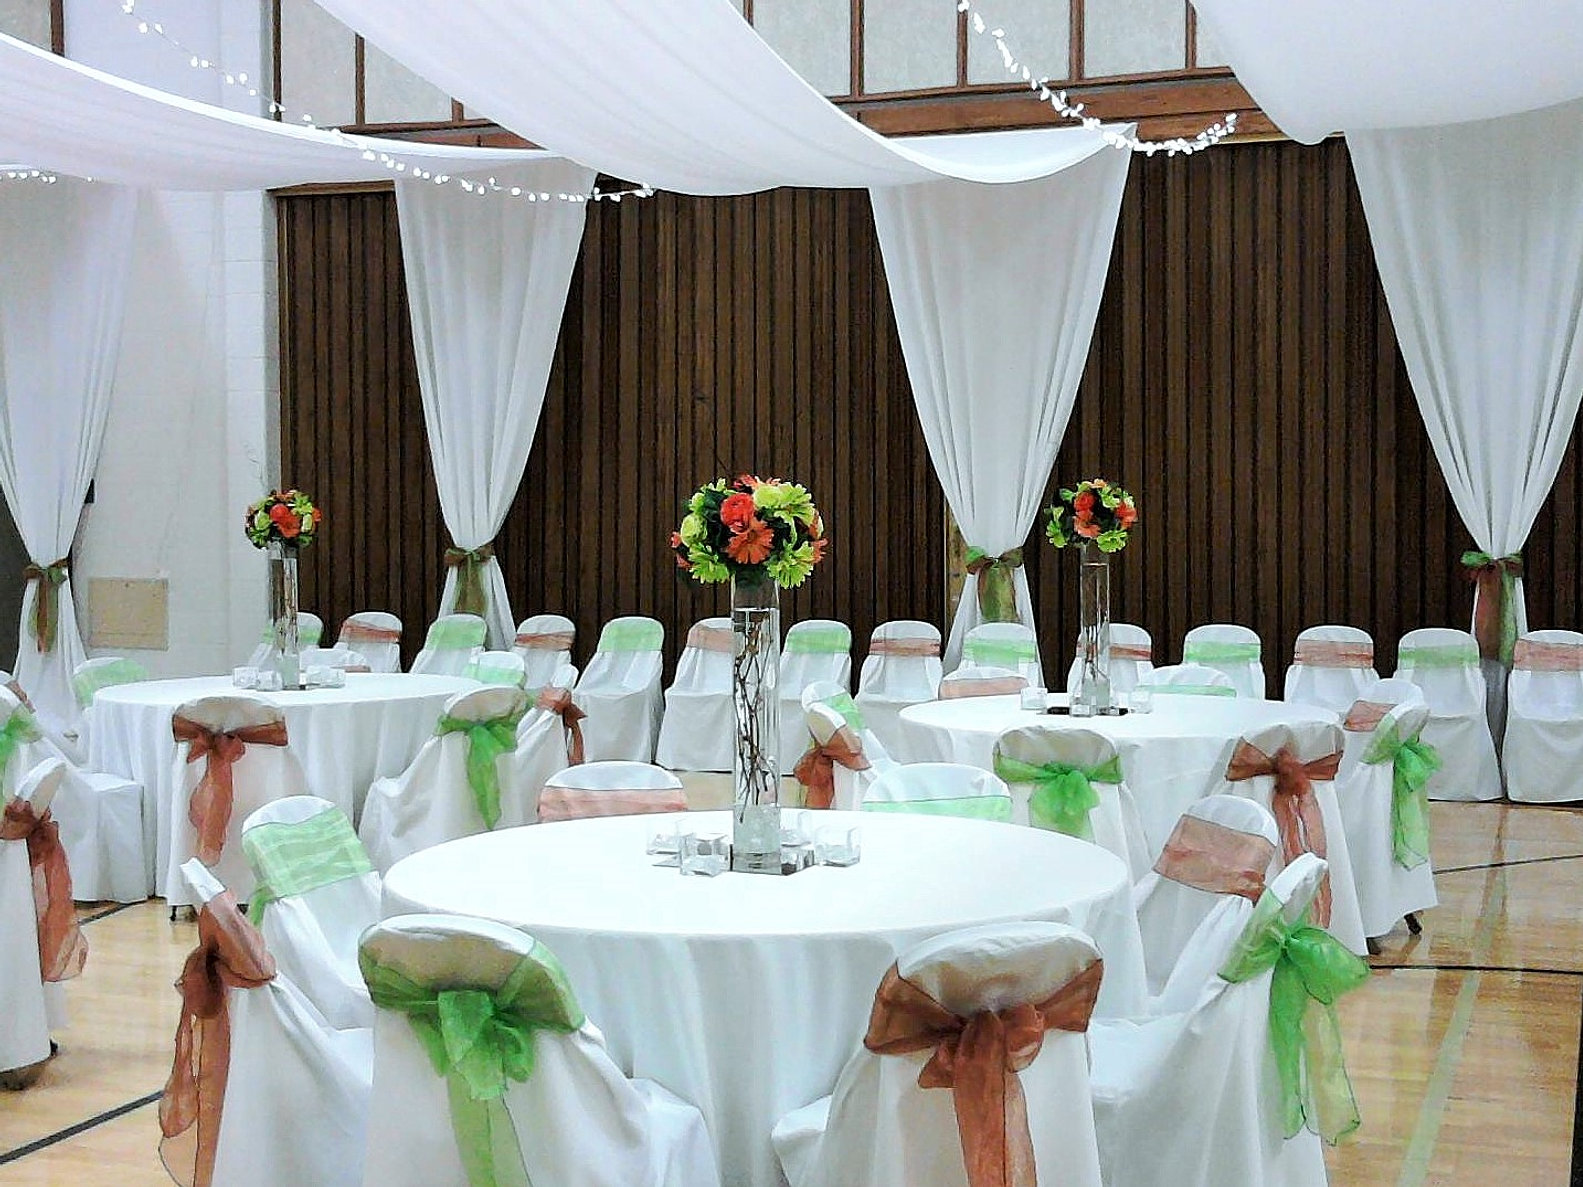 Wedding rentals utah weddings for less inc 0621121804 junglespirit Choice Image